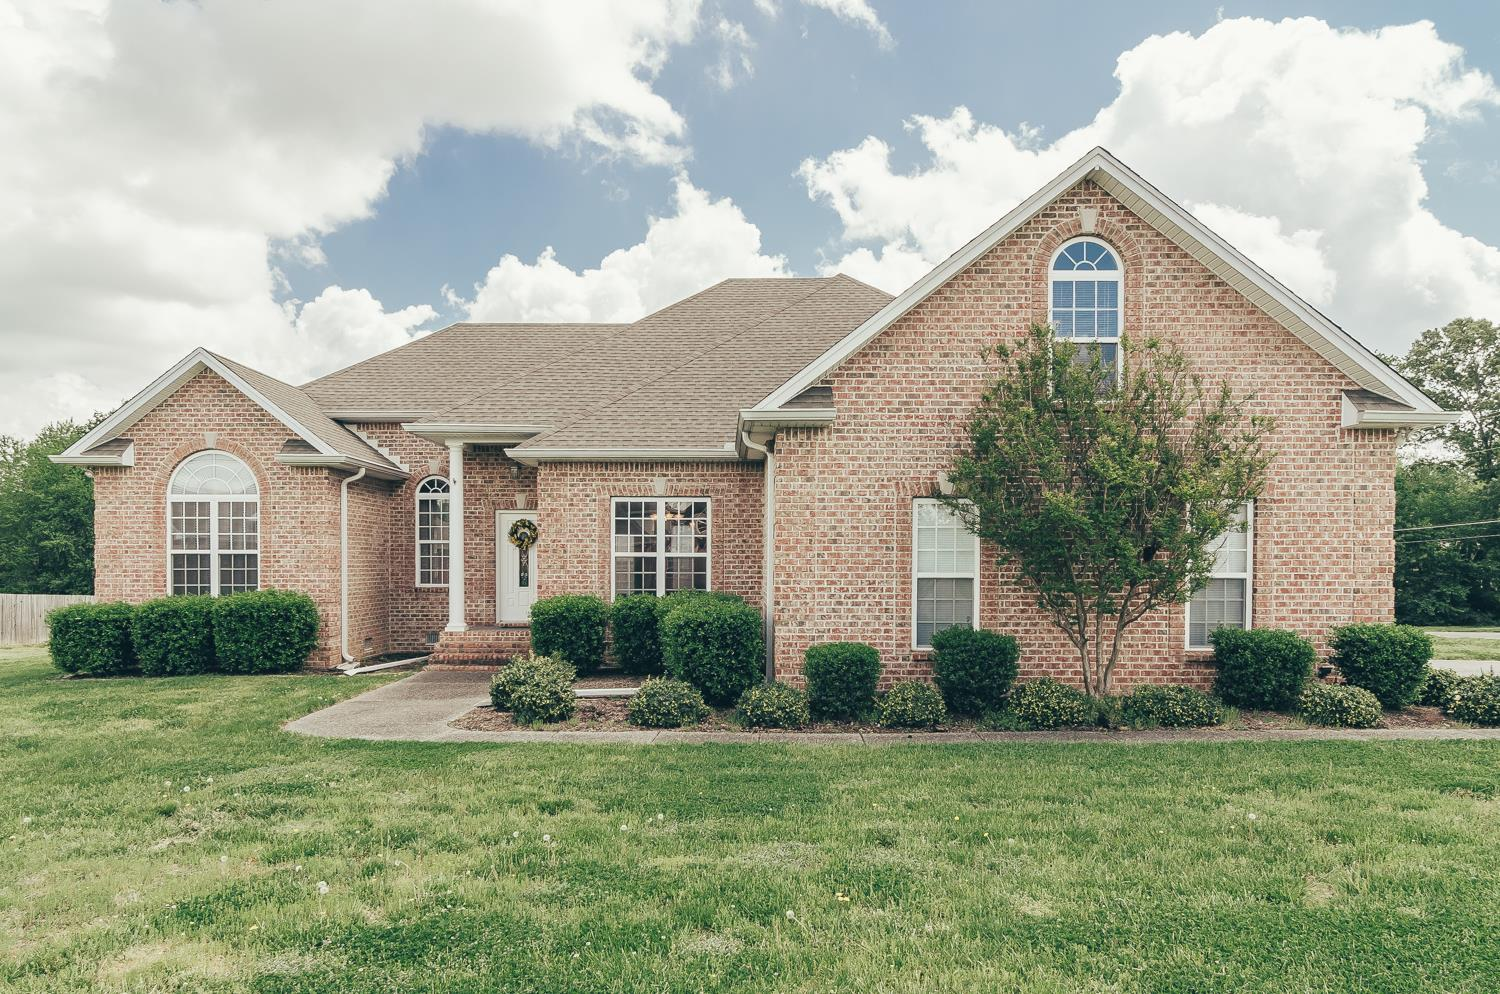 3001 Catoosa Ridge Ln, Greenbrier, TN 37073